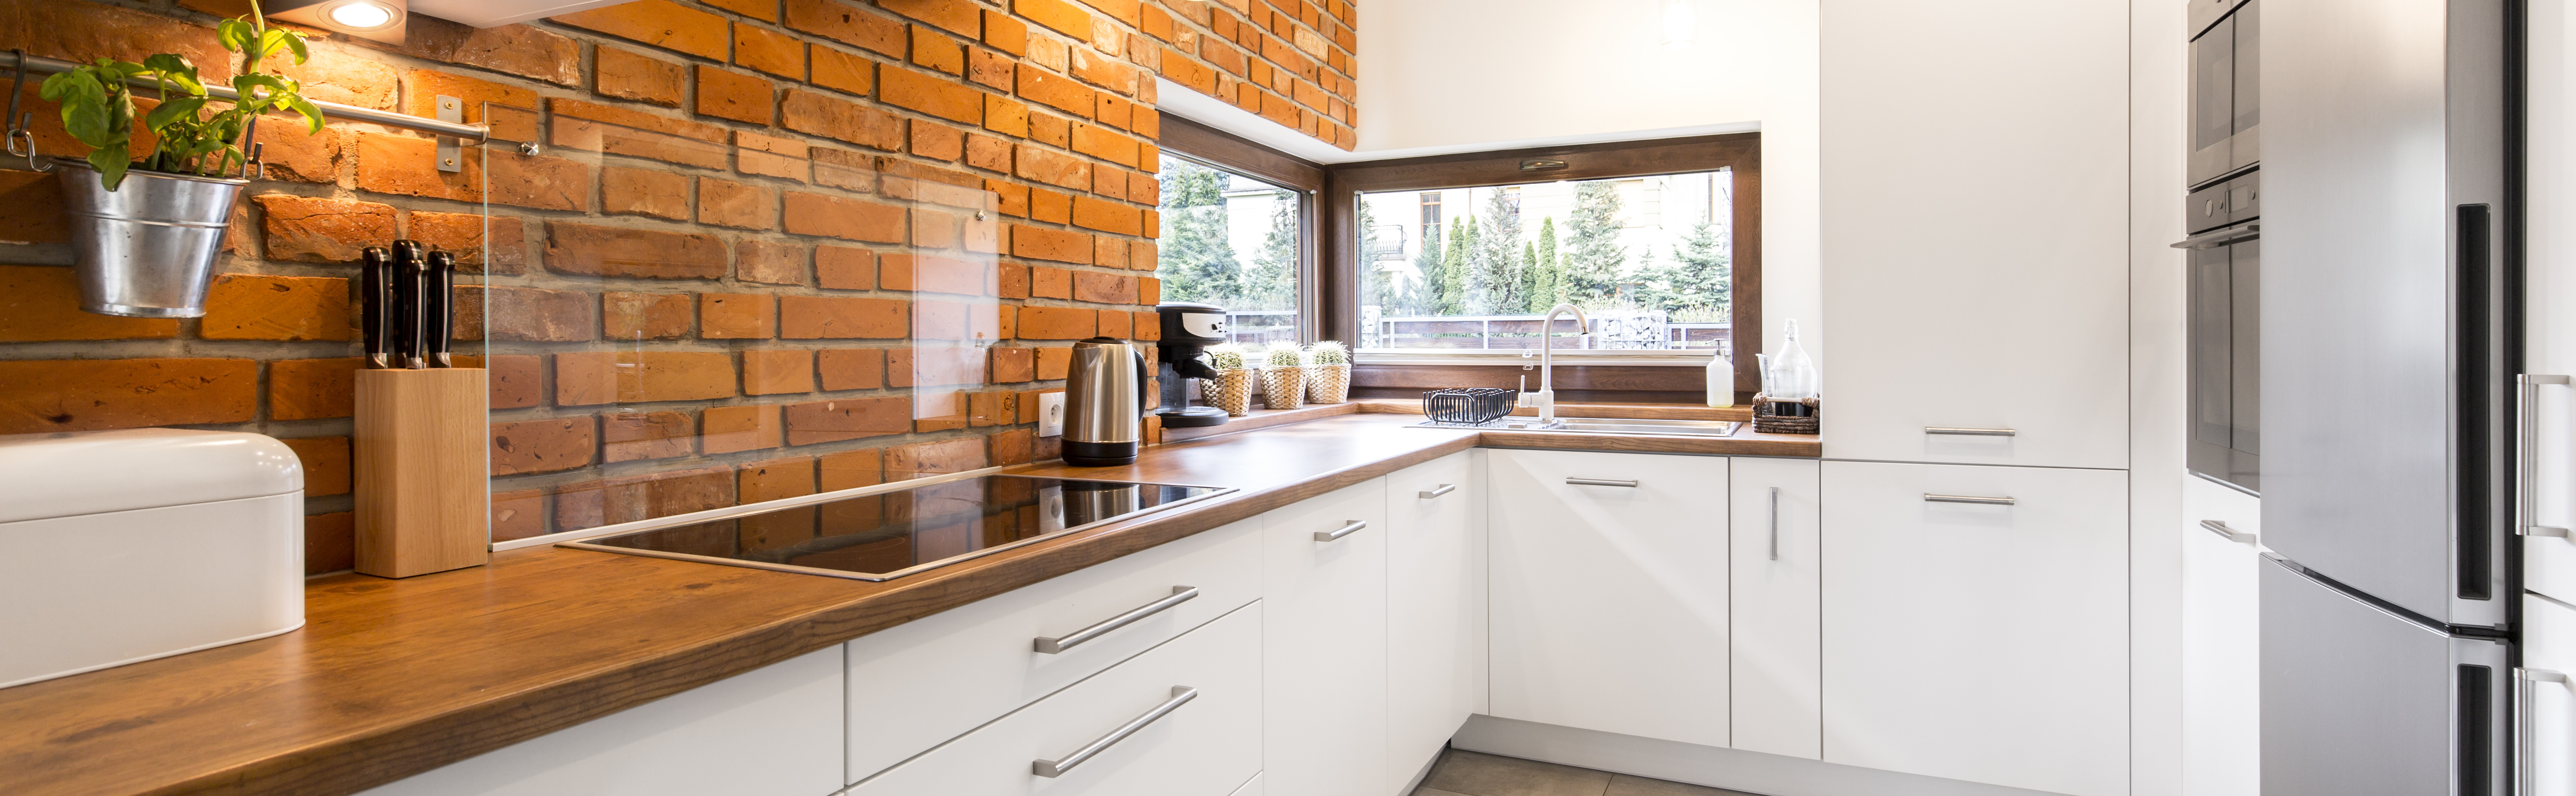 New Design Trends Are Cooking In The Kitchen How To Choose What Is Right For You Here Are The Top 10 Ideas To Consider Brick Com